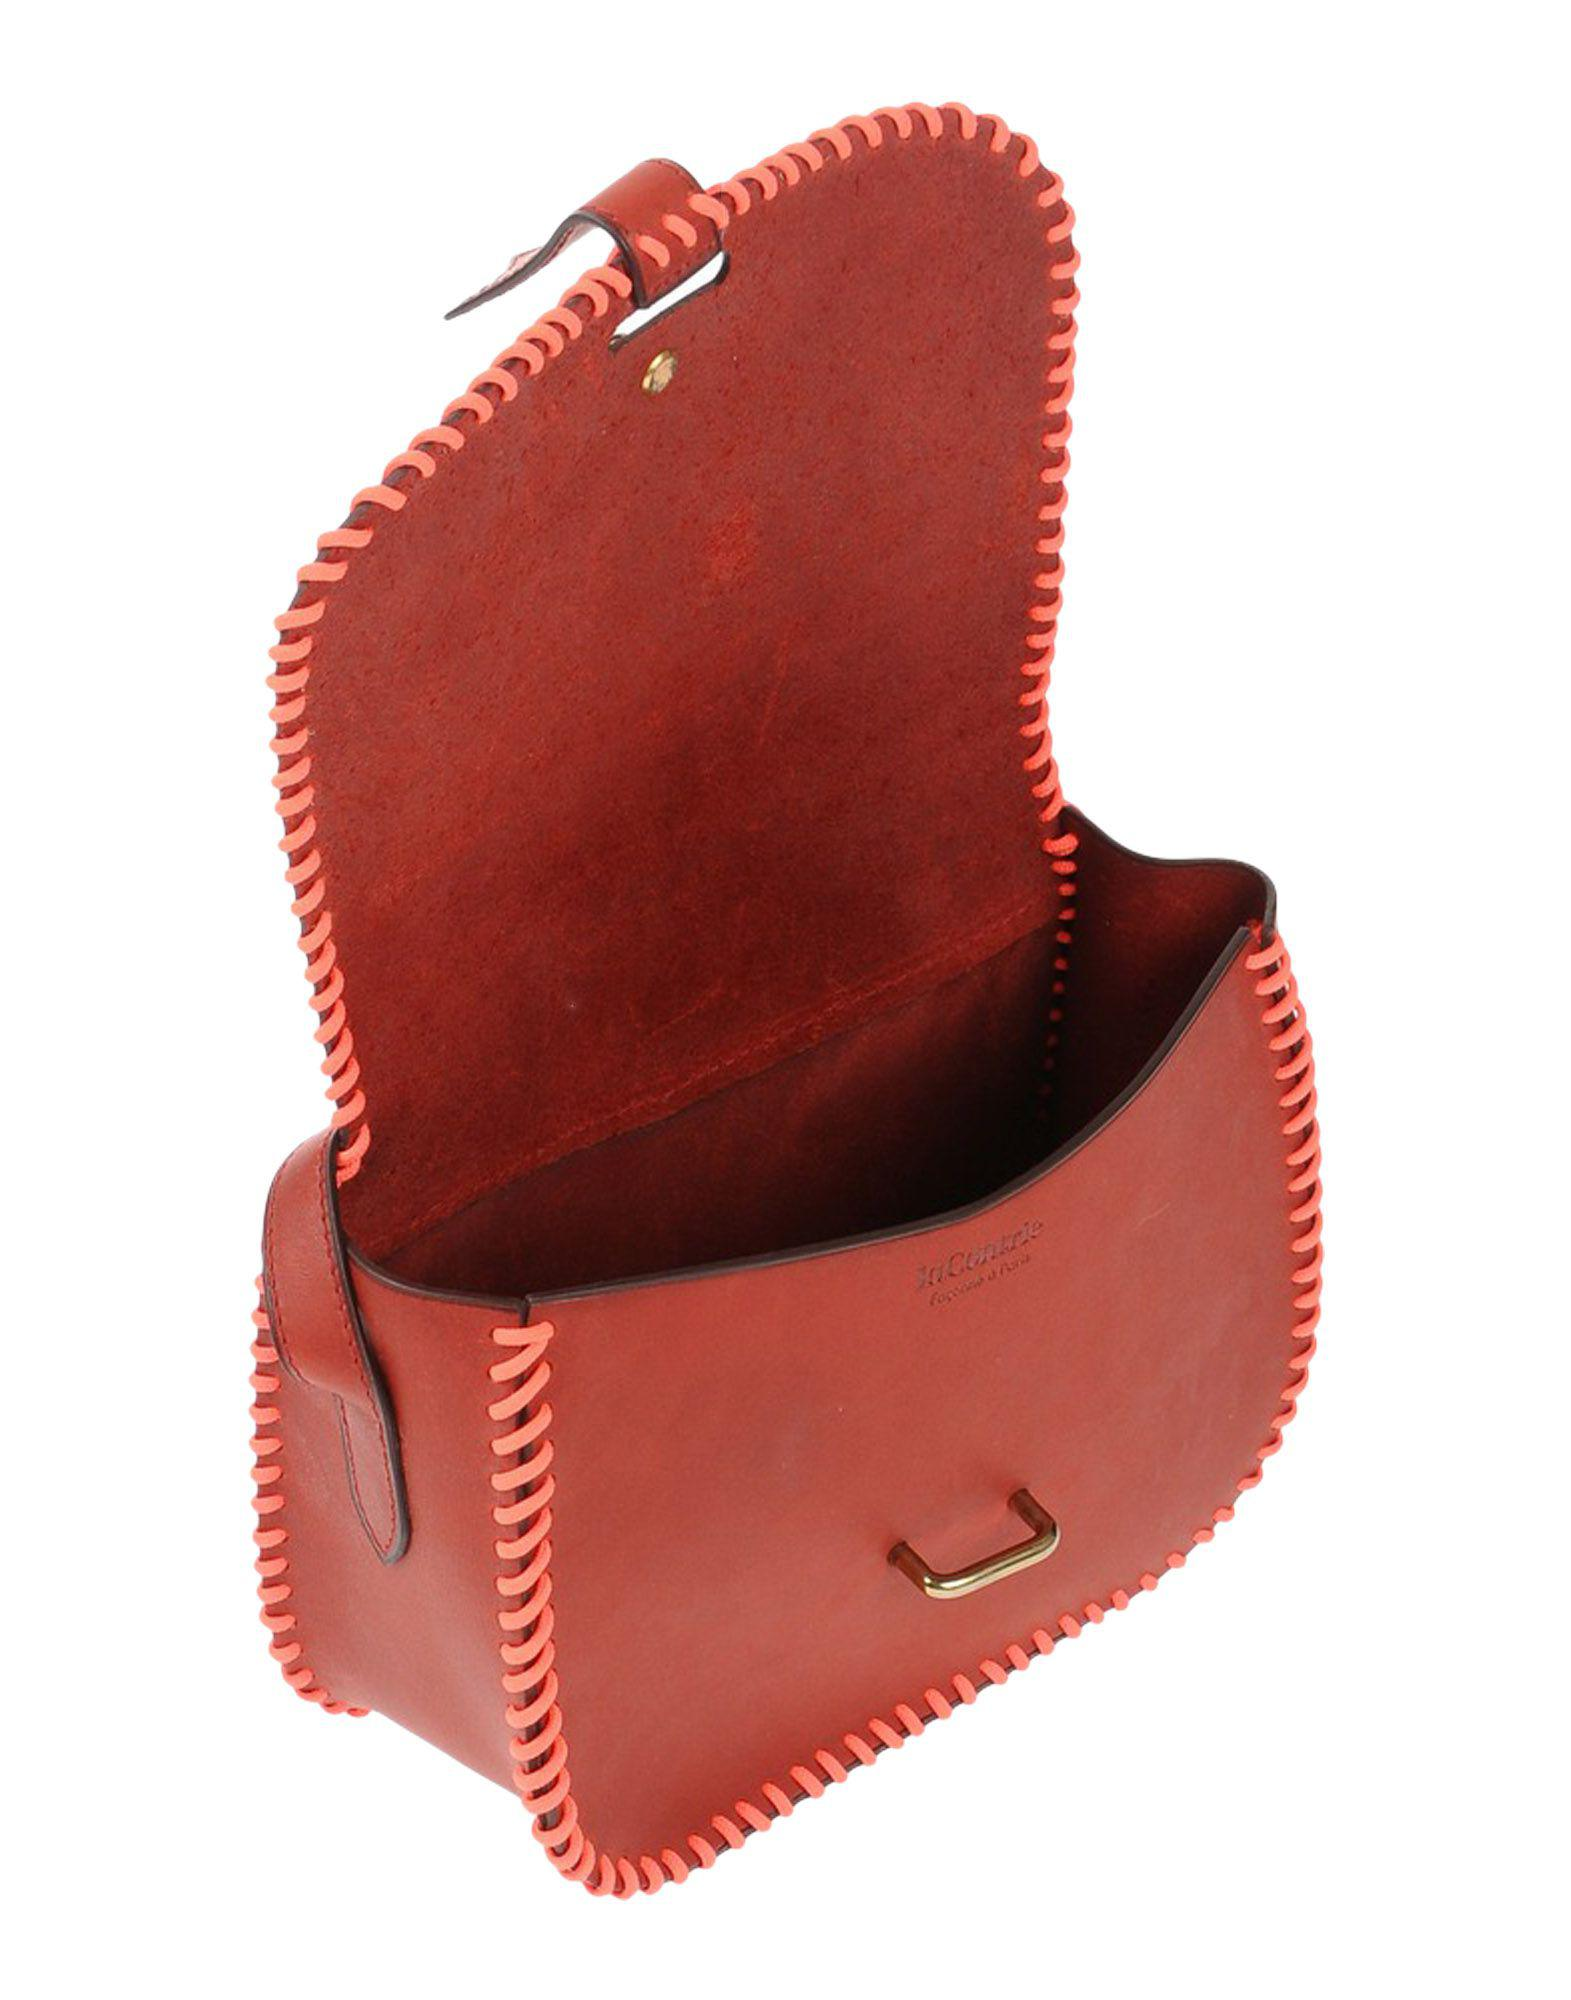 Lacontrie Leather Cross-body Bag in Brick Red (Red)